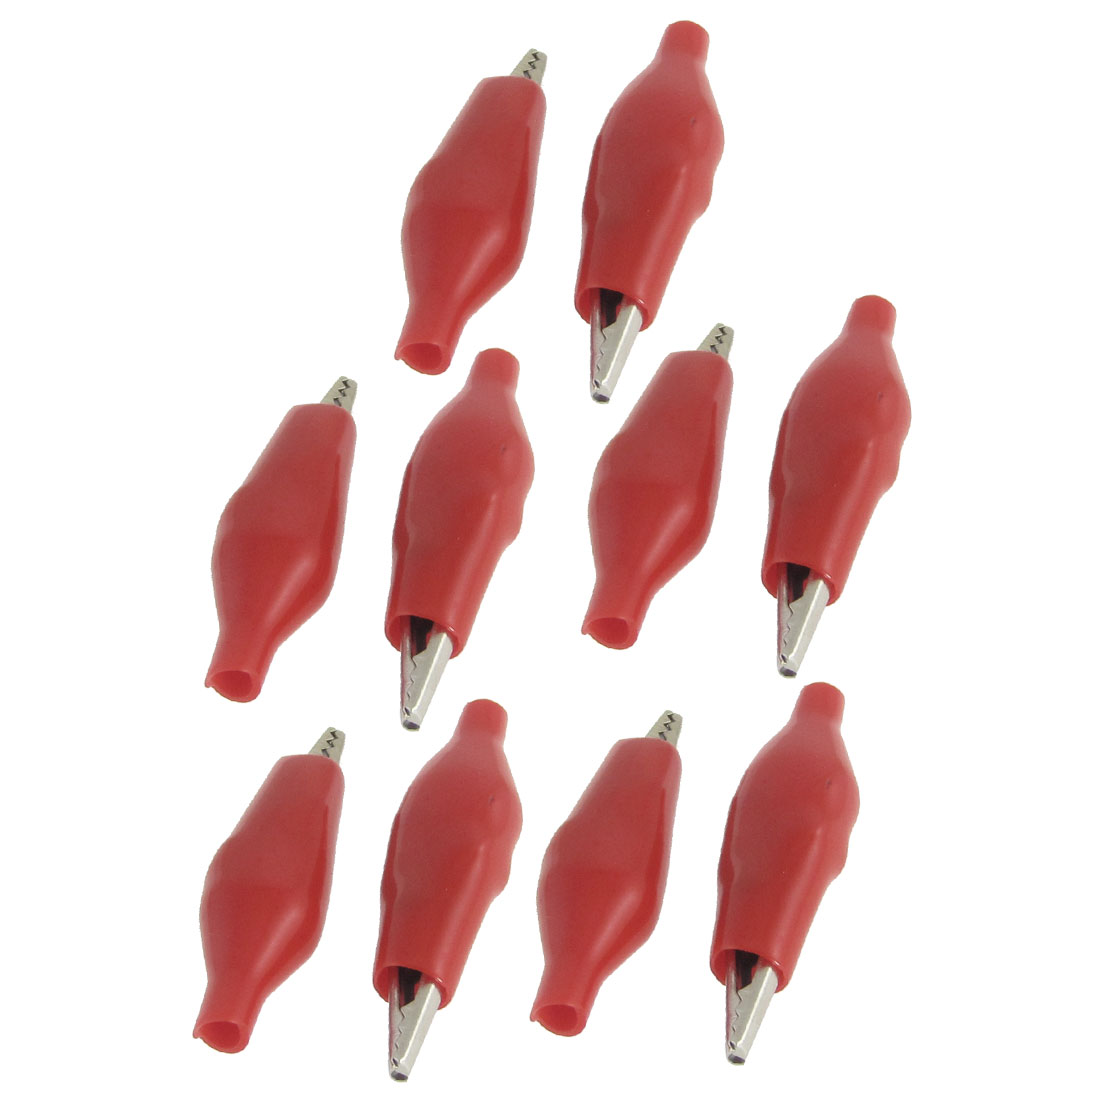 10 Pcs Red Boot 27mm Long Test Testing Probe Alligator Clips